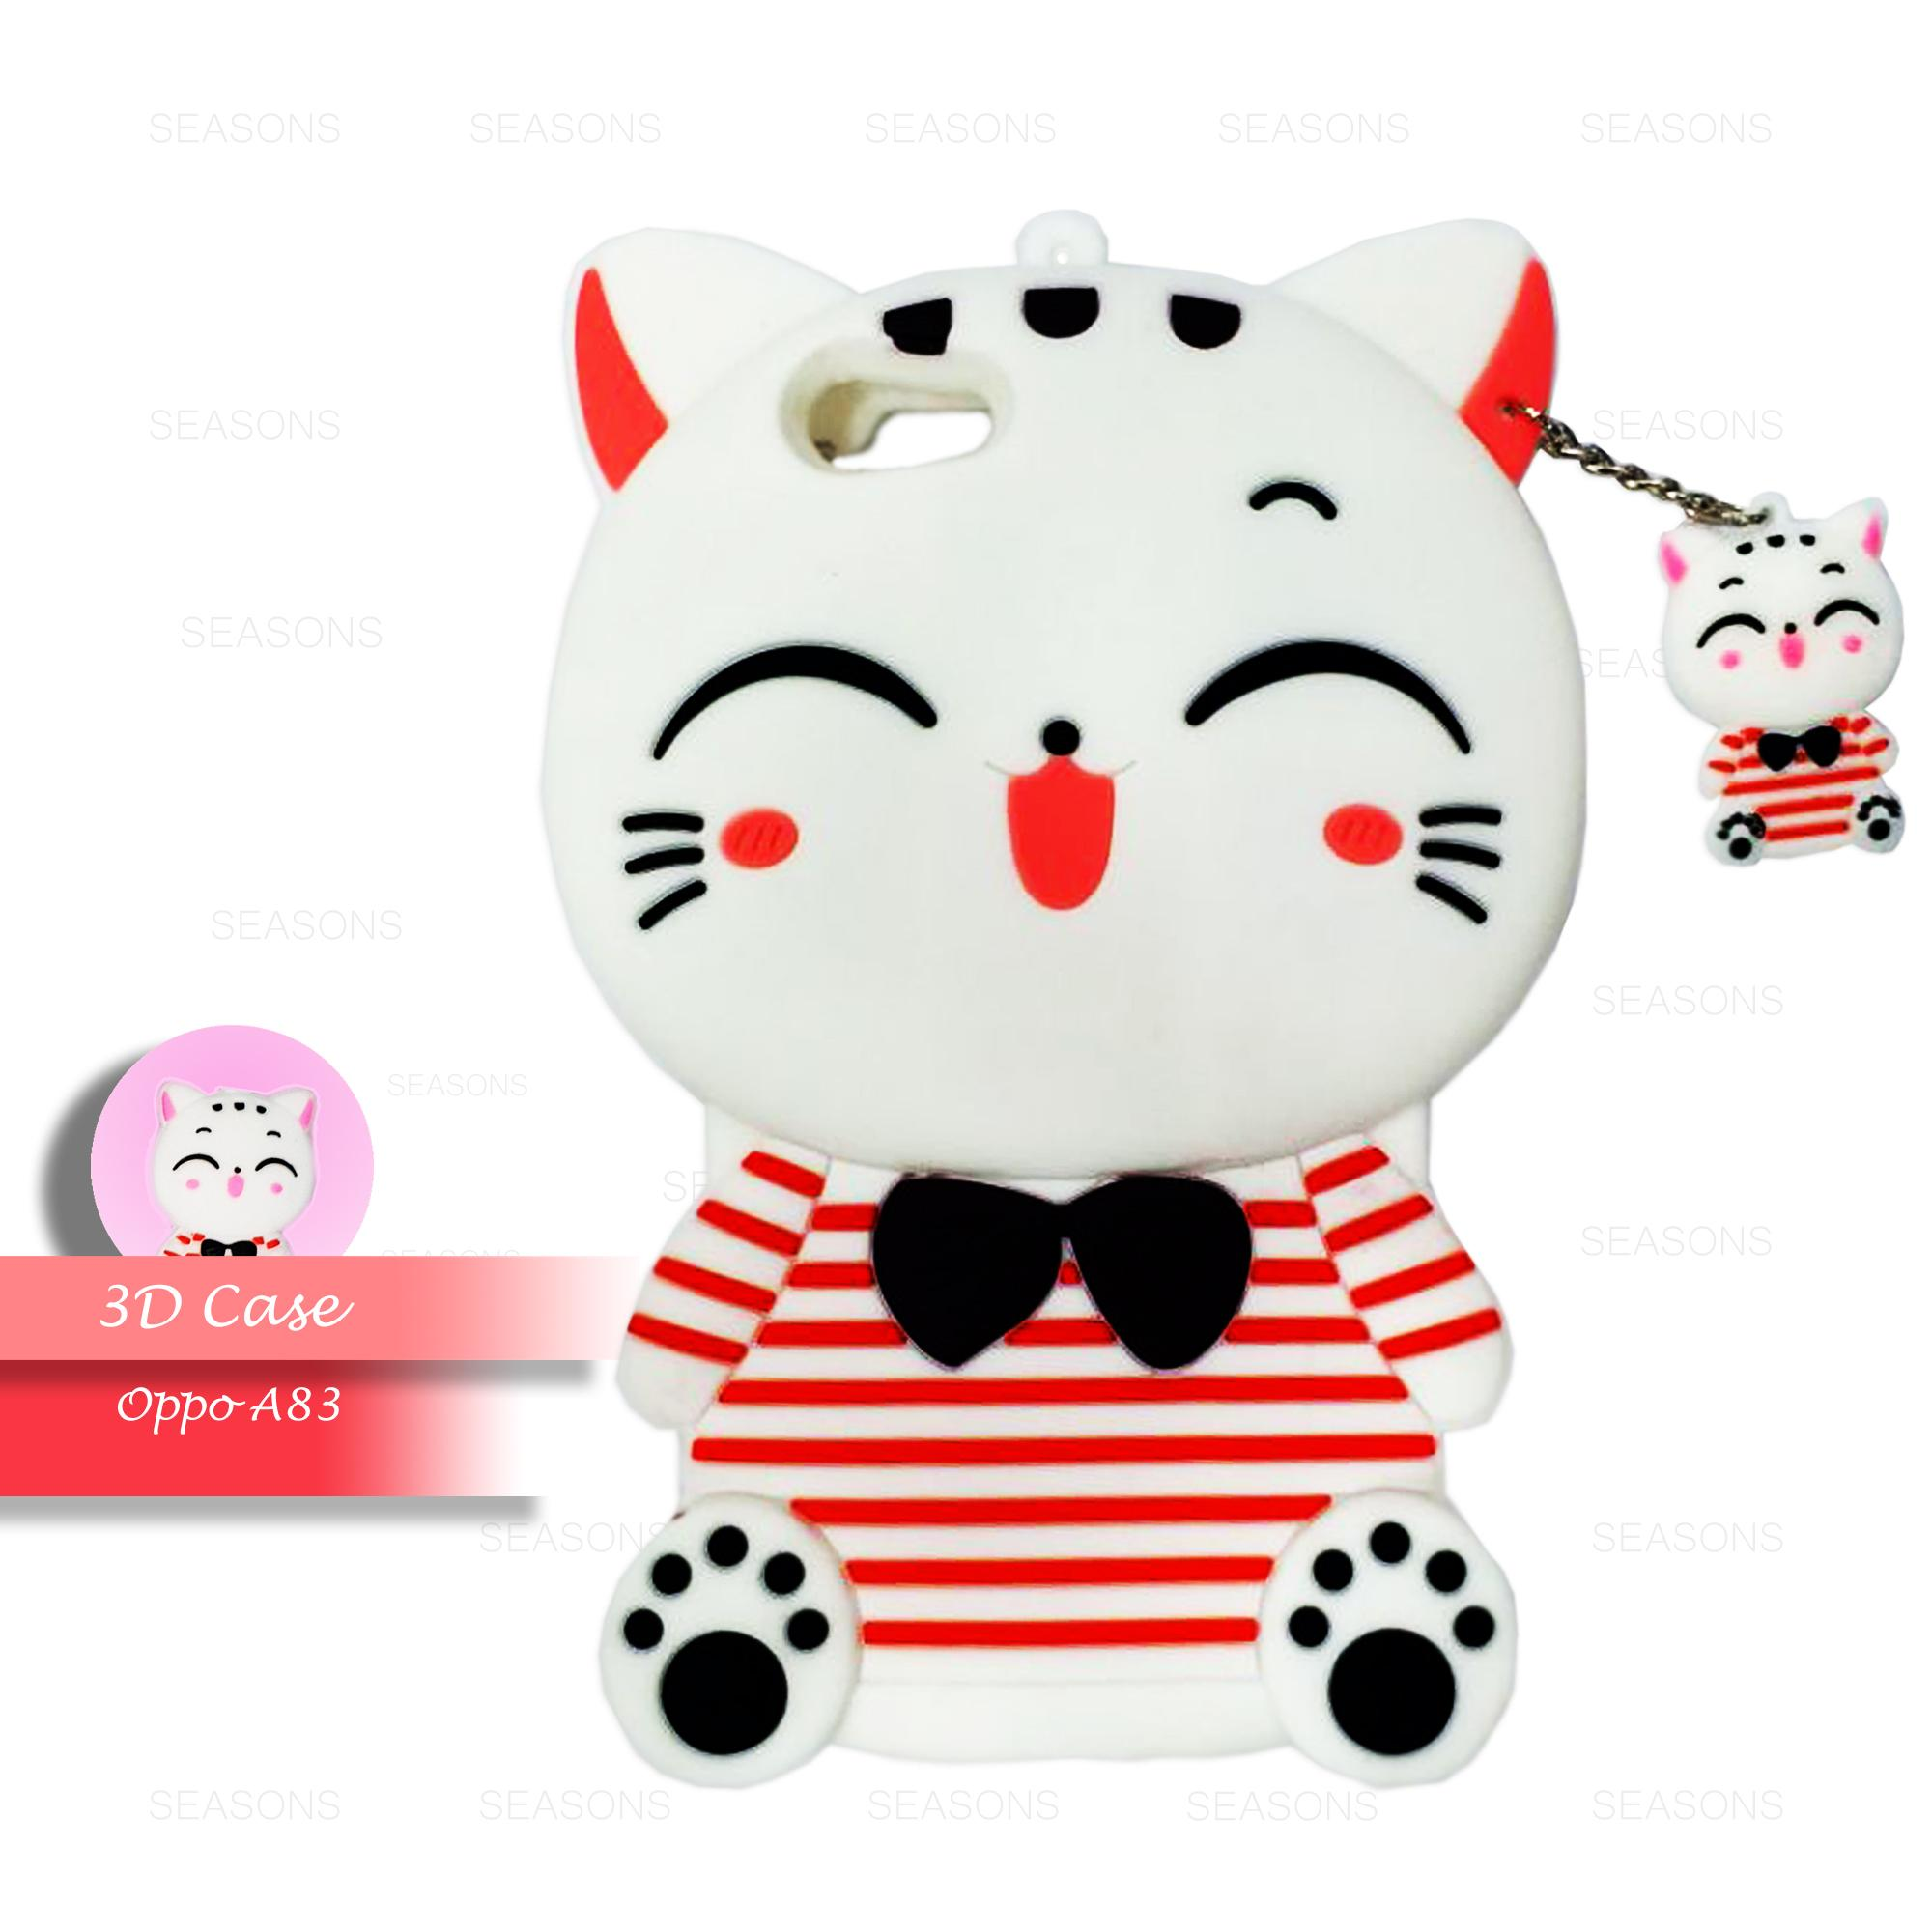 Seasons Little Cat Soft Silicon Phone Case Oppo A83